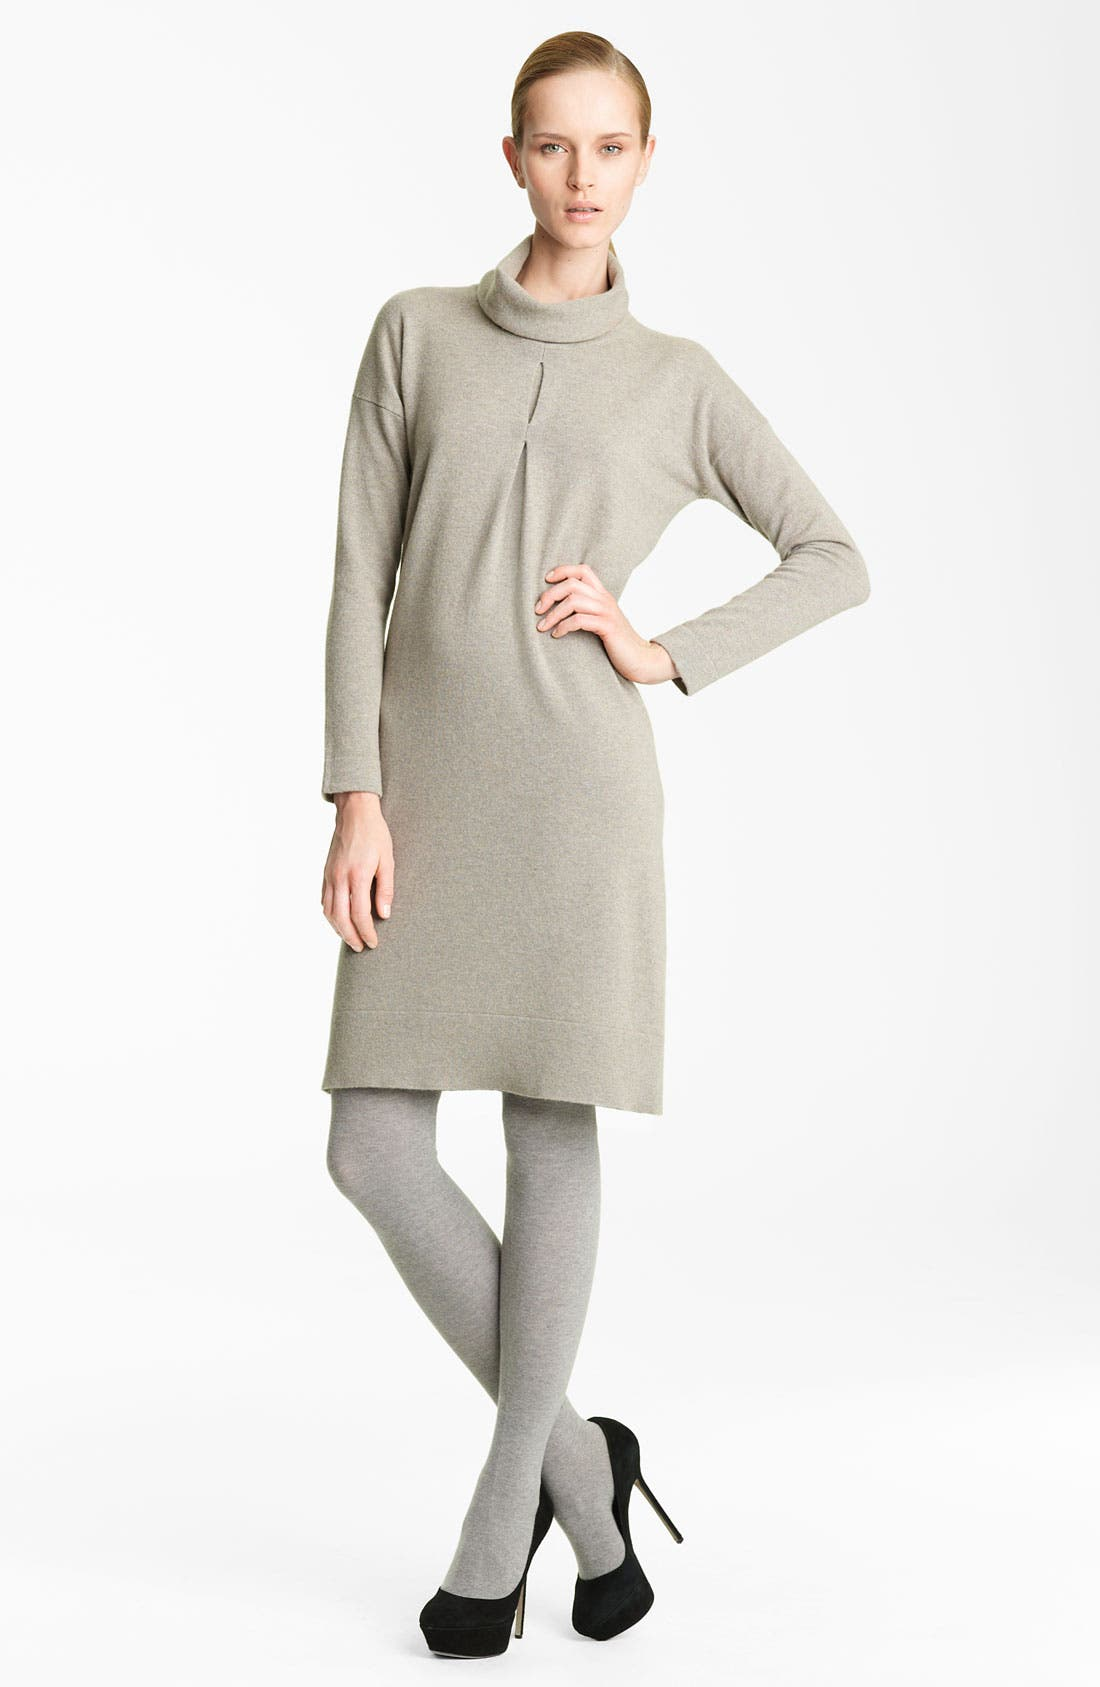 Alternate Image 1 Selected - Fabiana Filippi Turtleneck Cashmere Dress